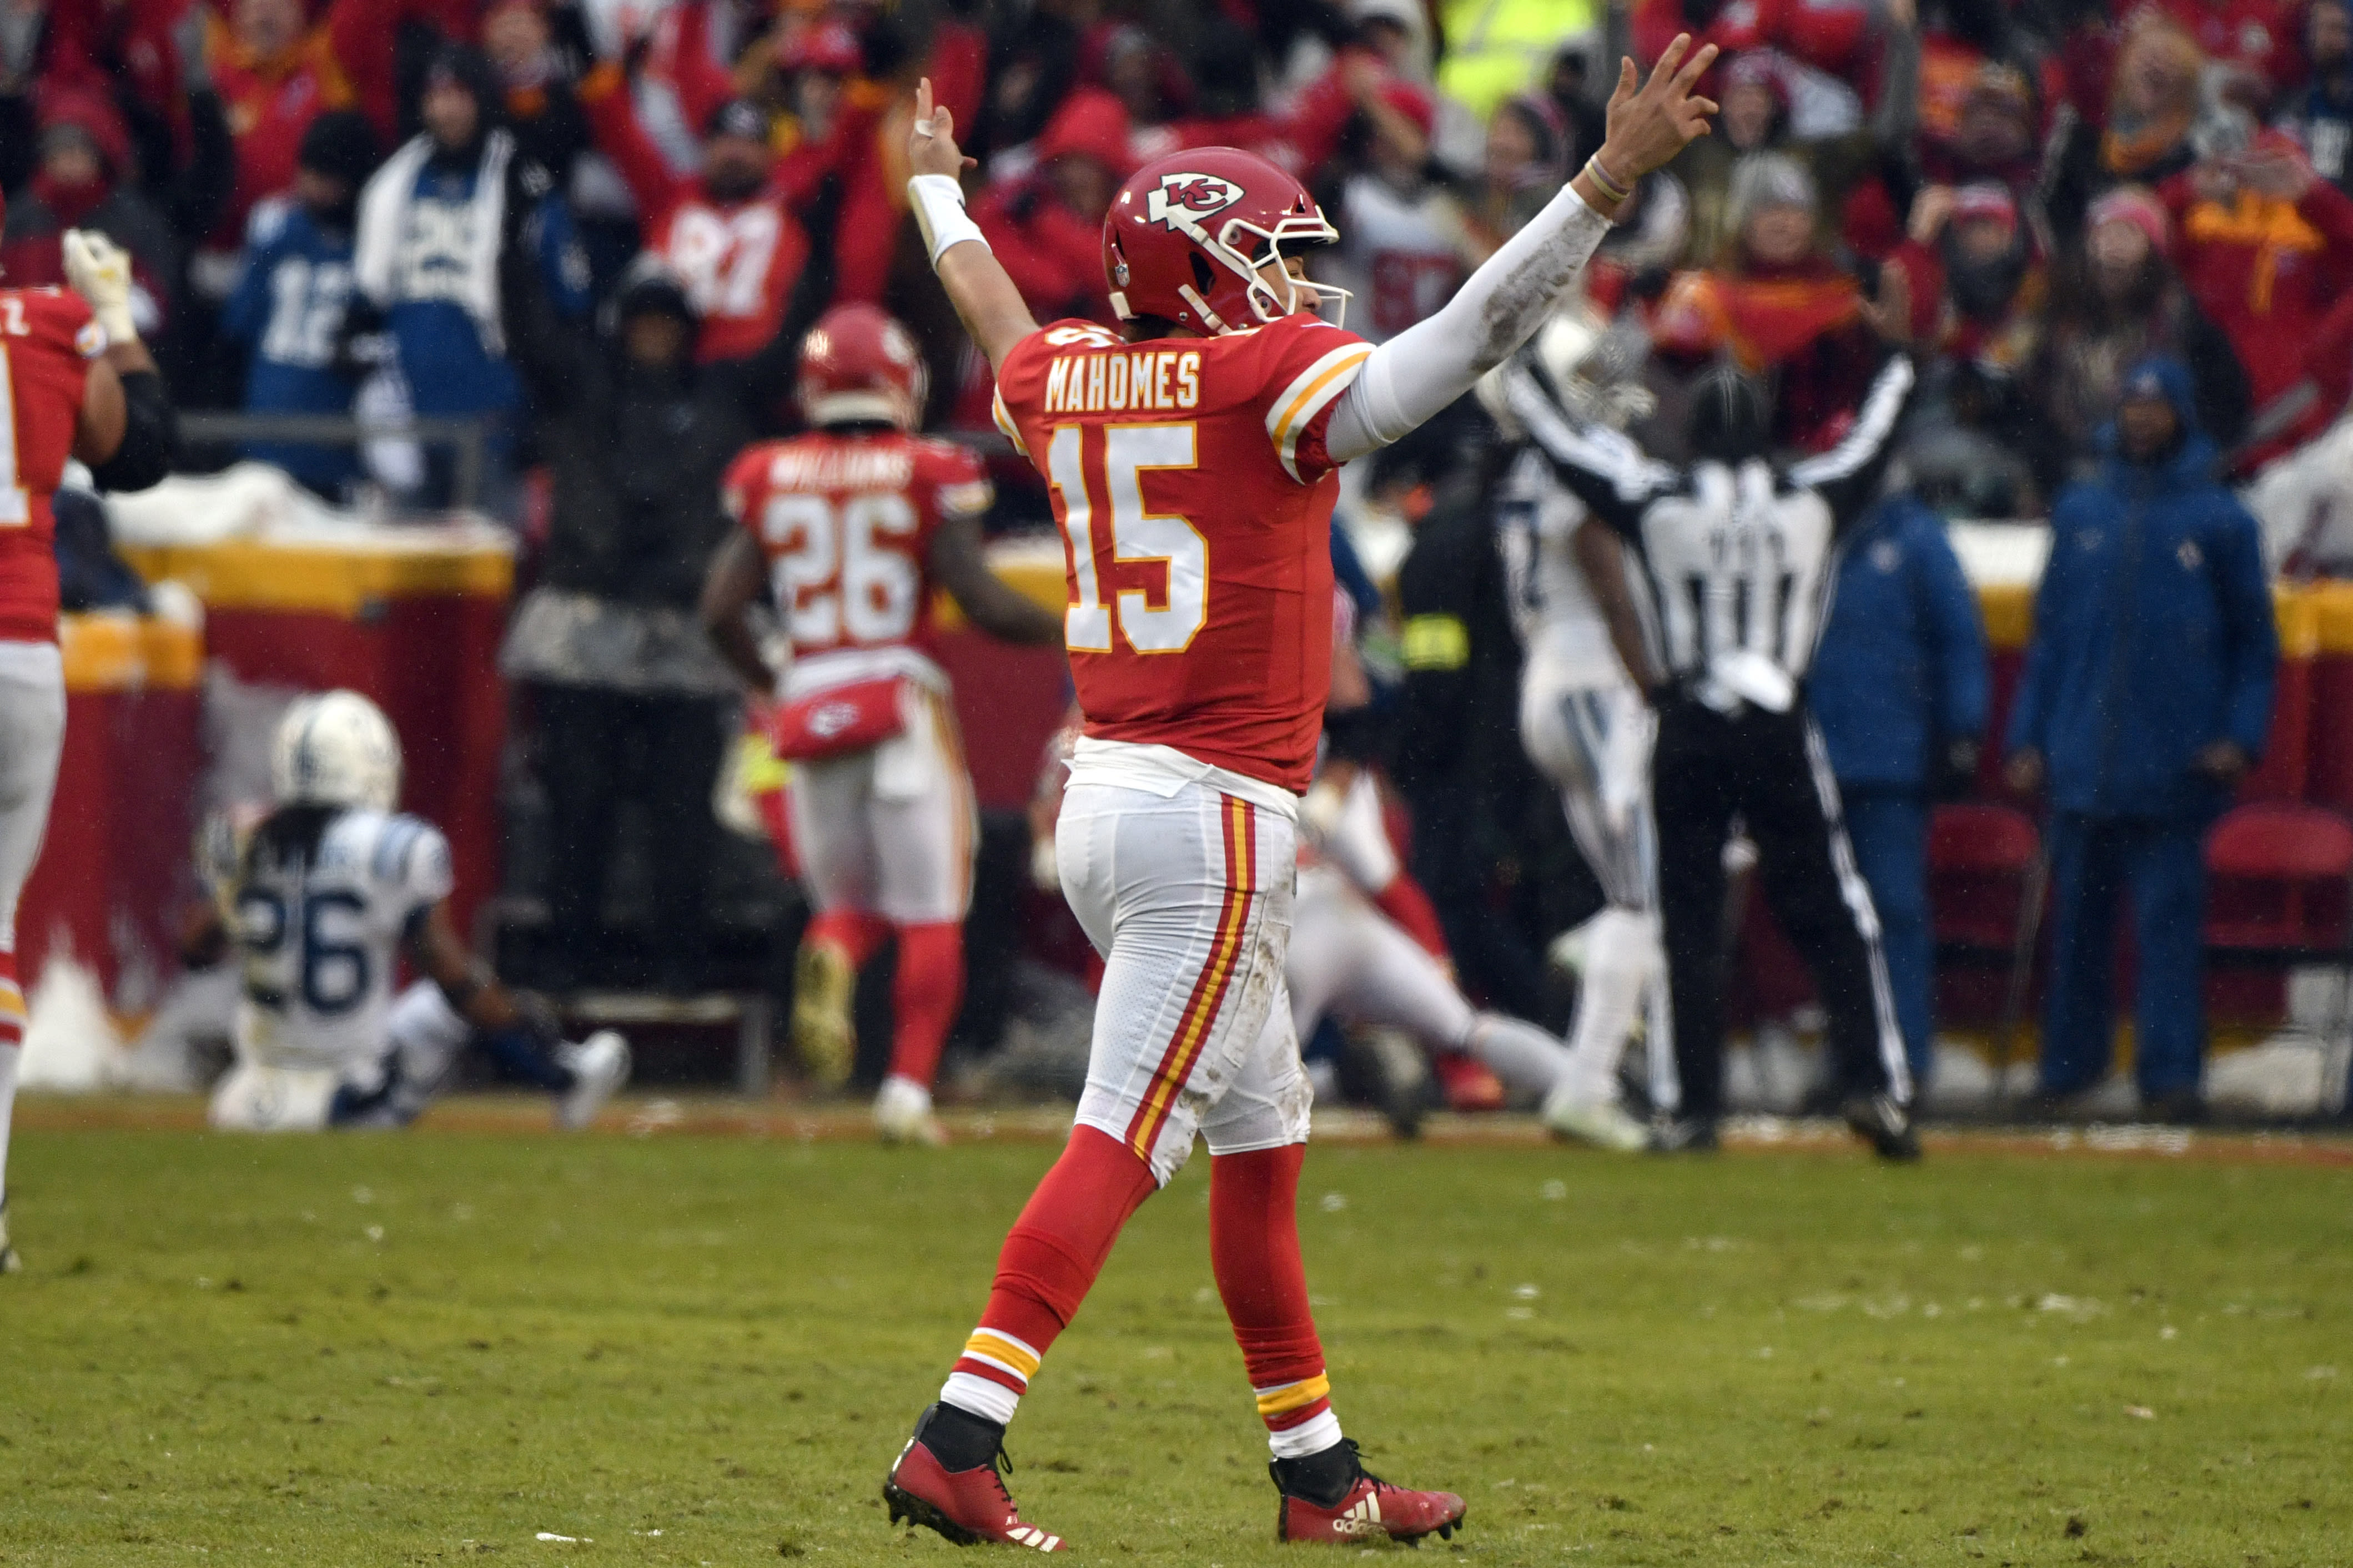 ef8077f36cf Chiefs dominate Colts